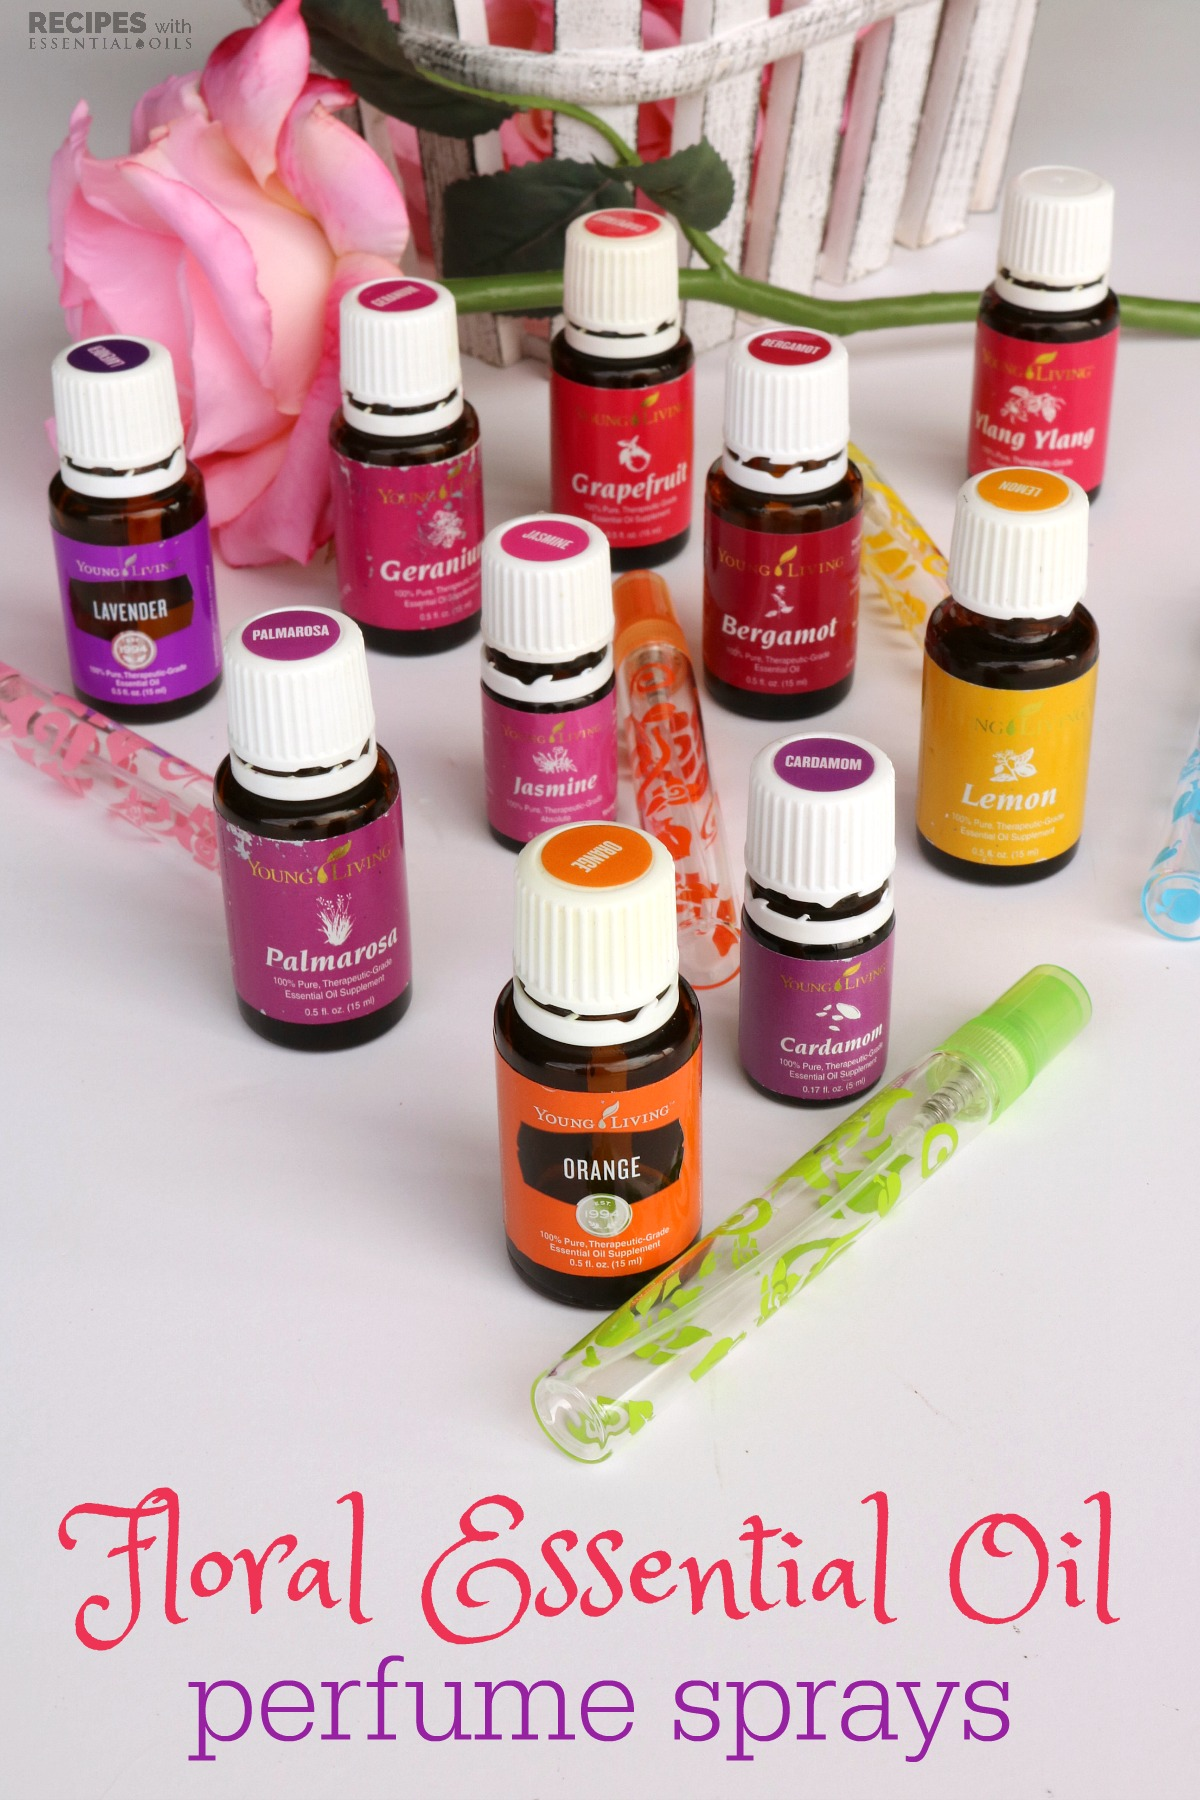 4 Floral Essential Oil Perfume Sprays - Recipes with ...